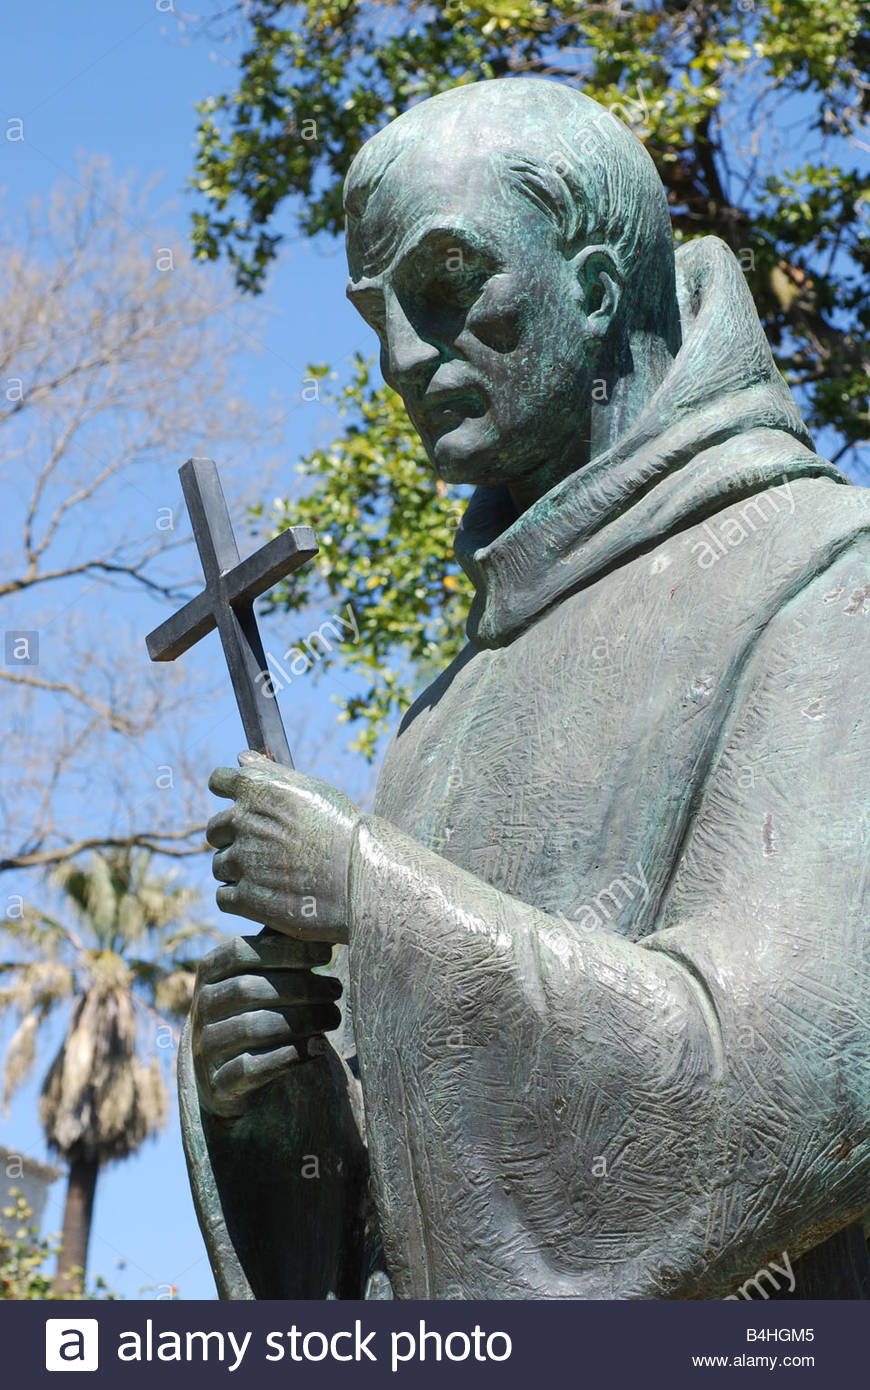 Close-up of the memorial to Serra at the State Capitol Park. Serra's canonization in 2015 by Pope Francis was protested by Native Americans in California, many of whom see Serra as representative of Spain's cruel colonization of their ancestors.